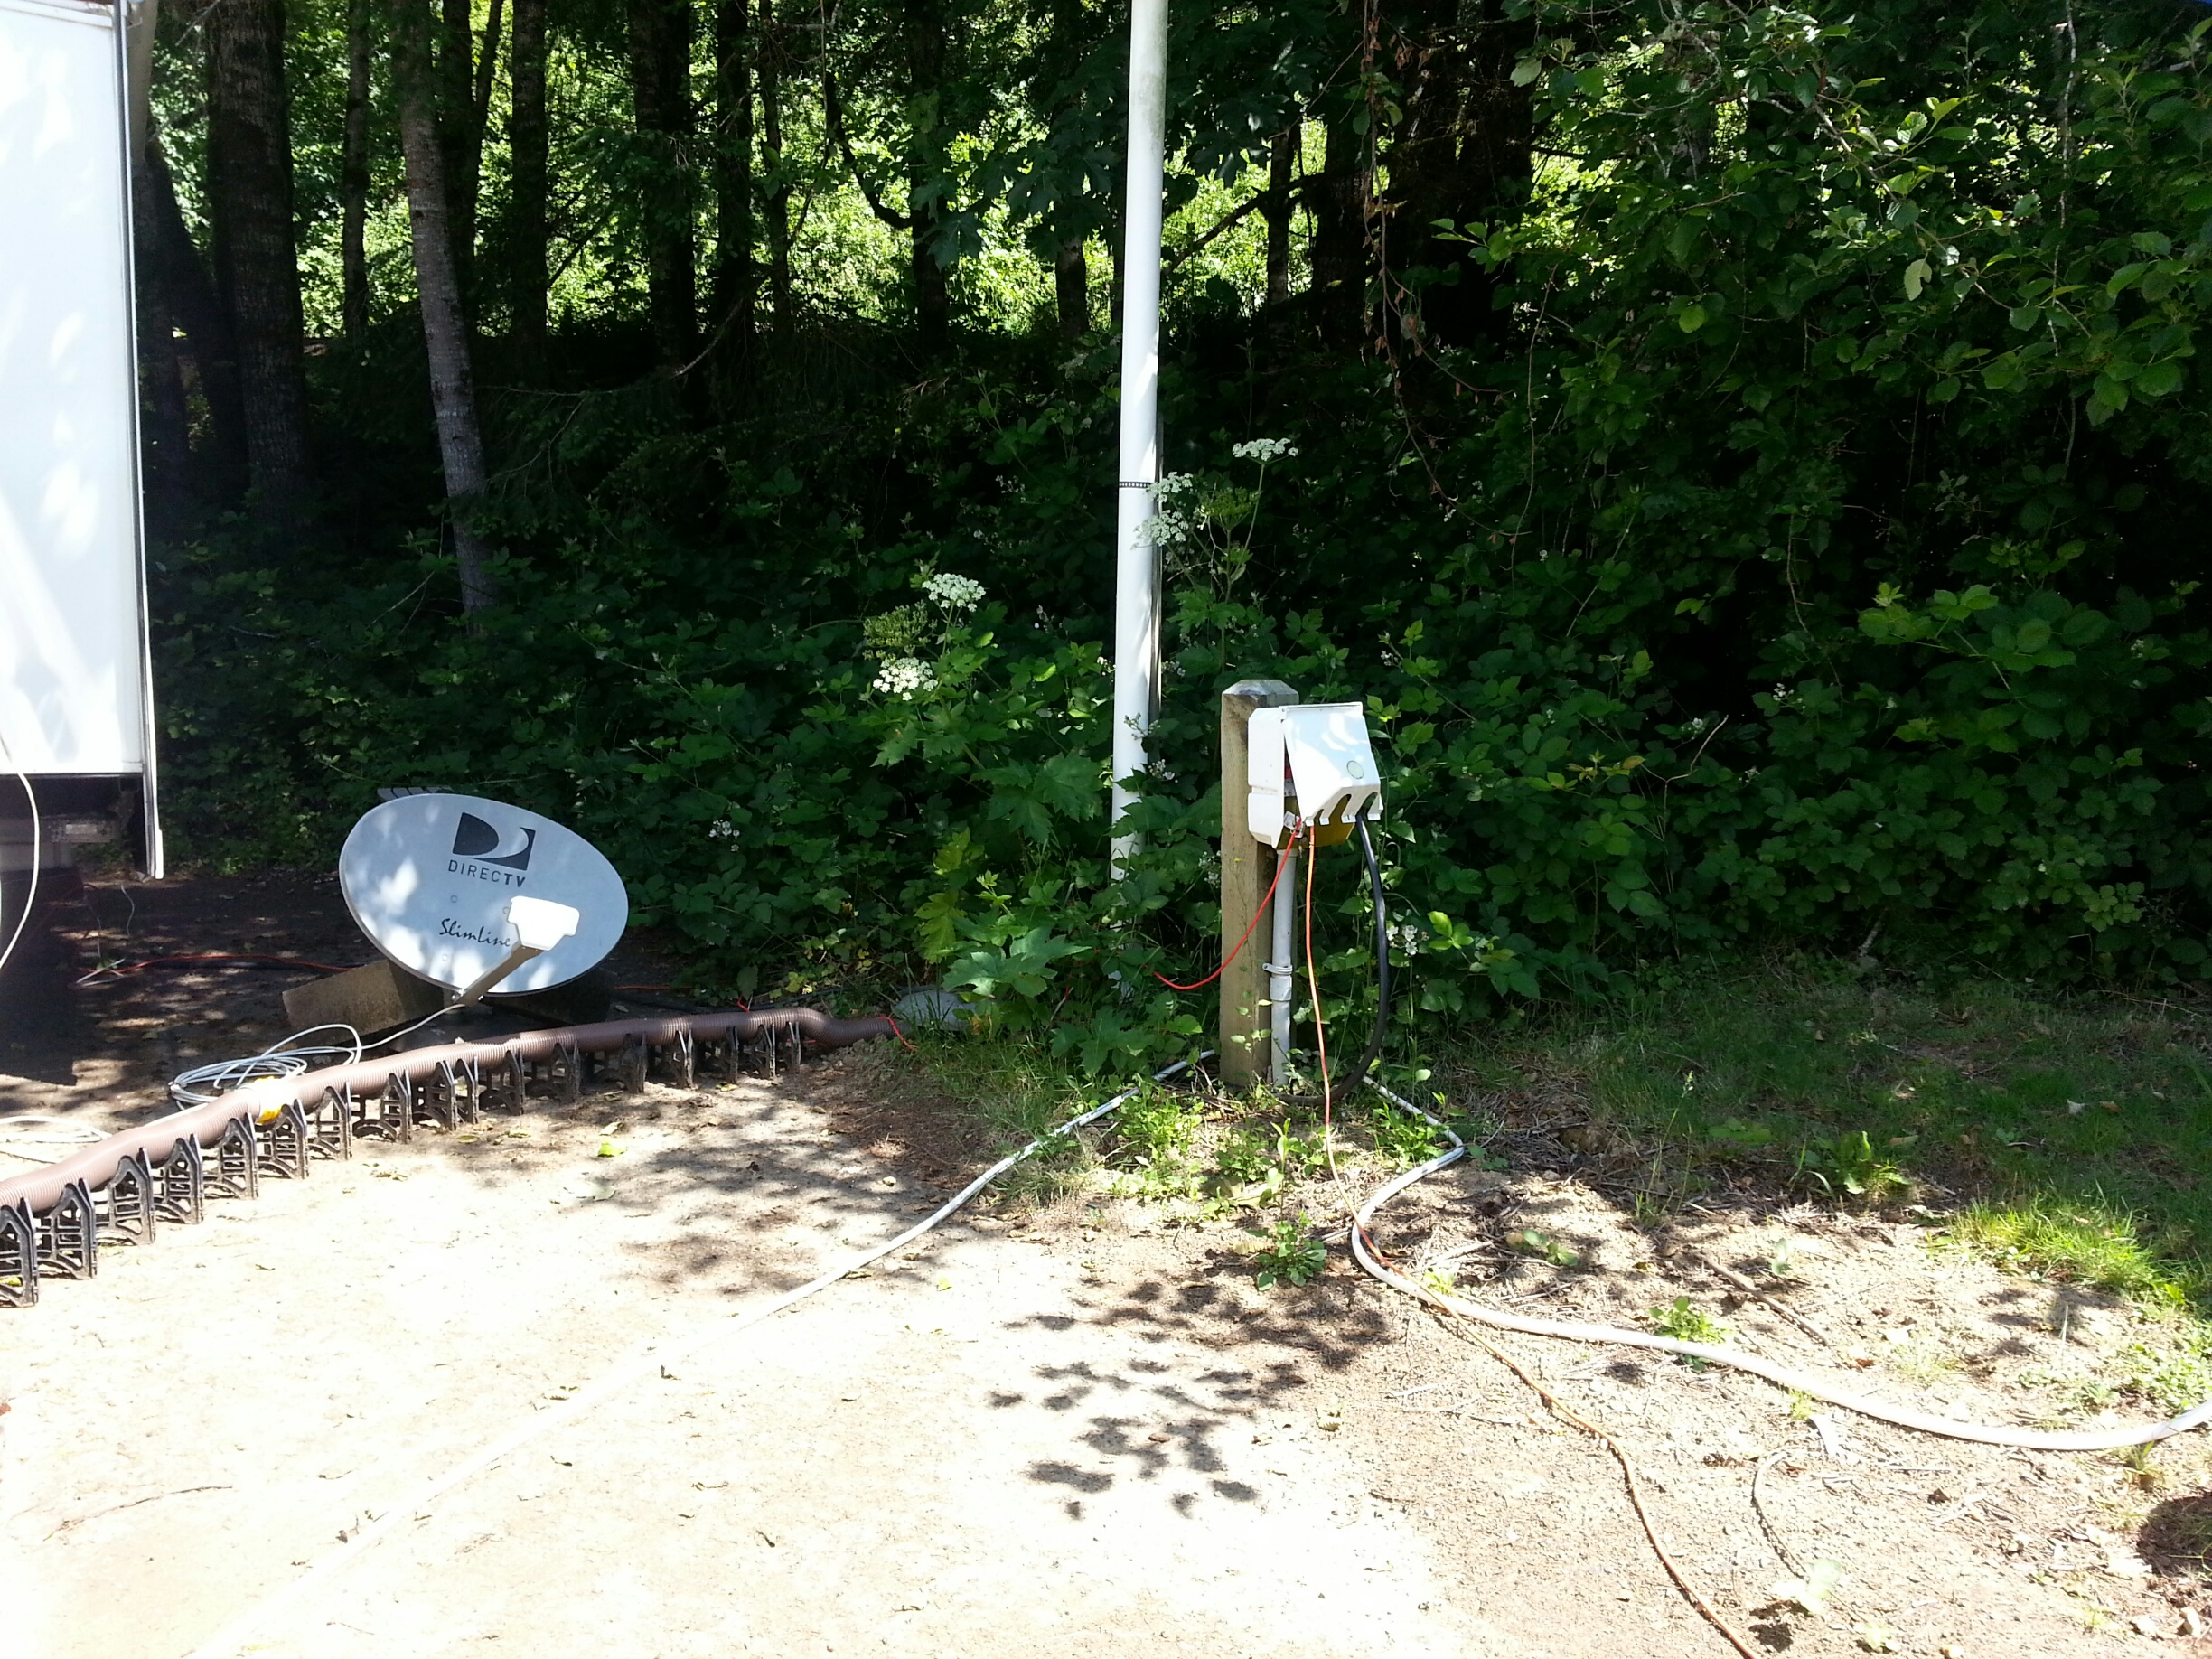 Hookups are close by - by River Edge Campground Hosts, Jim & Faunie Menke